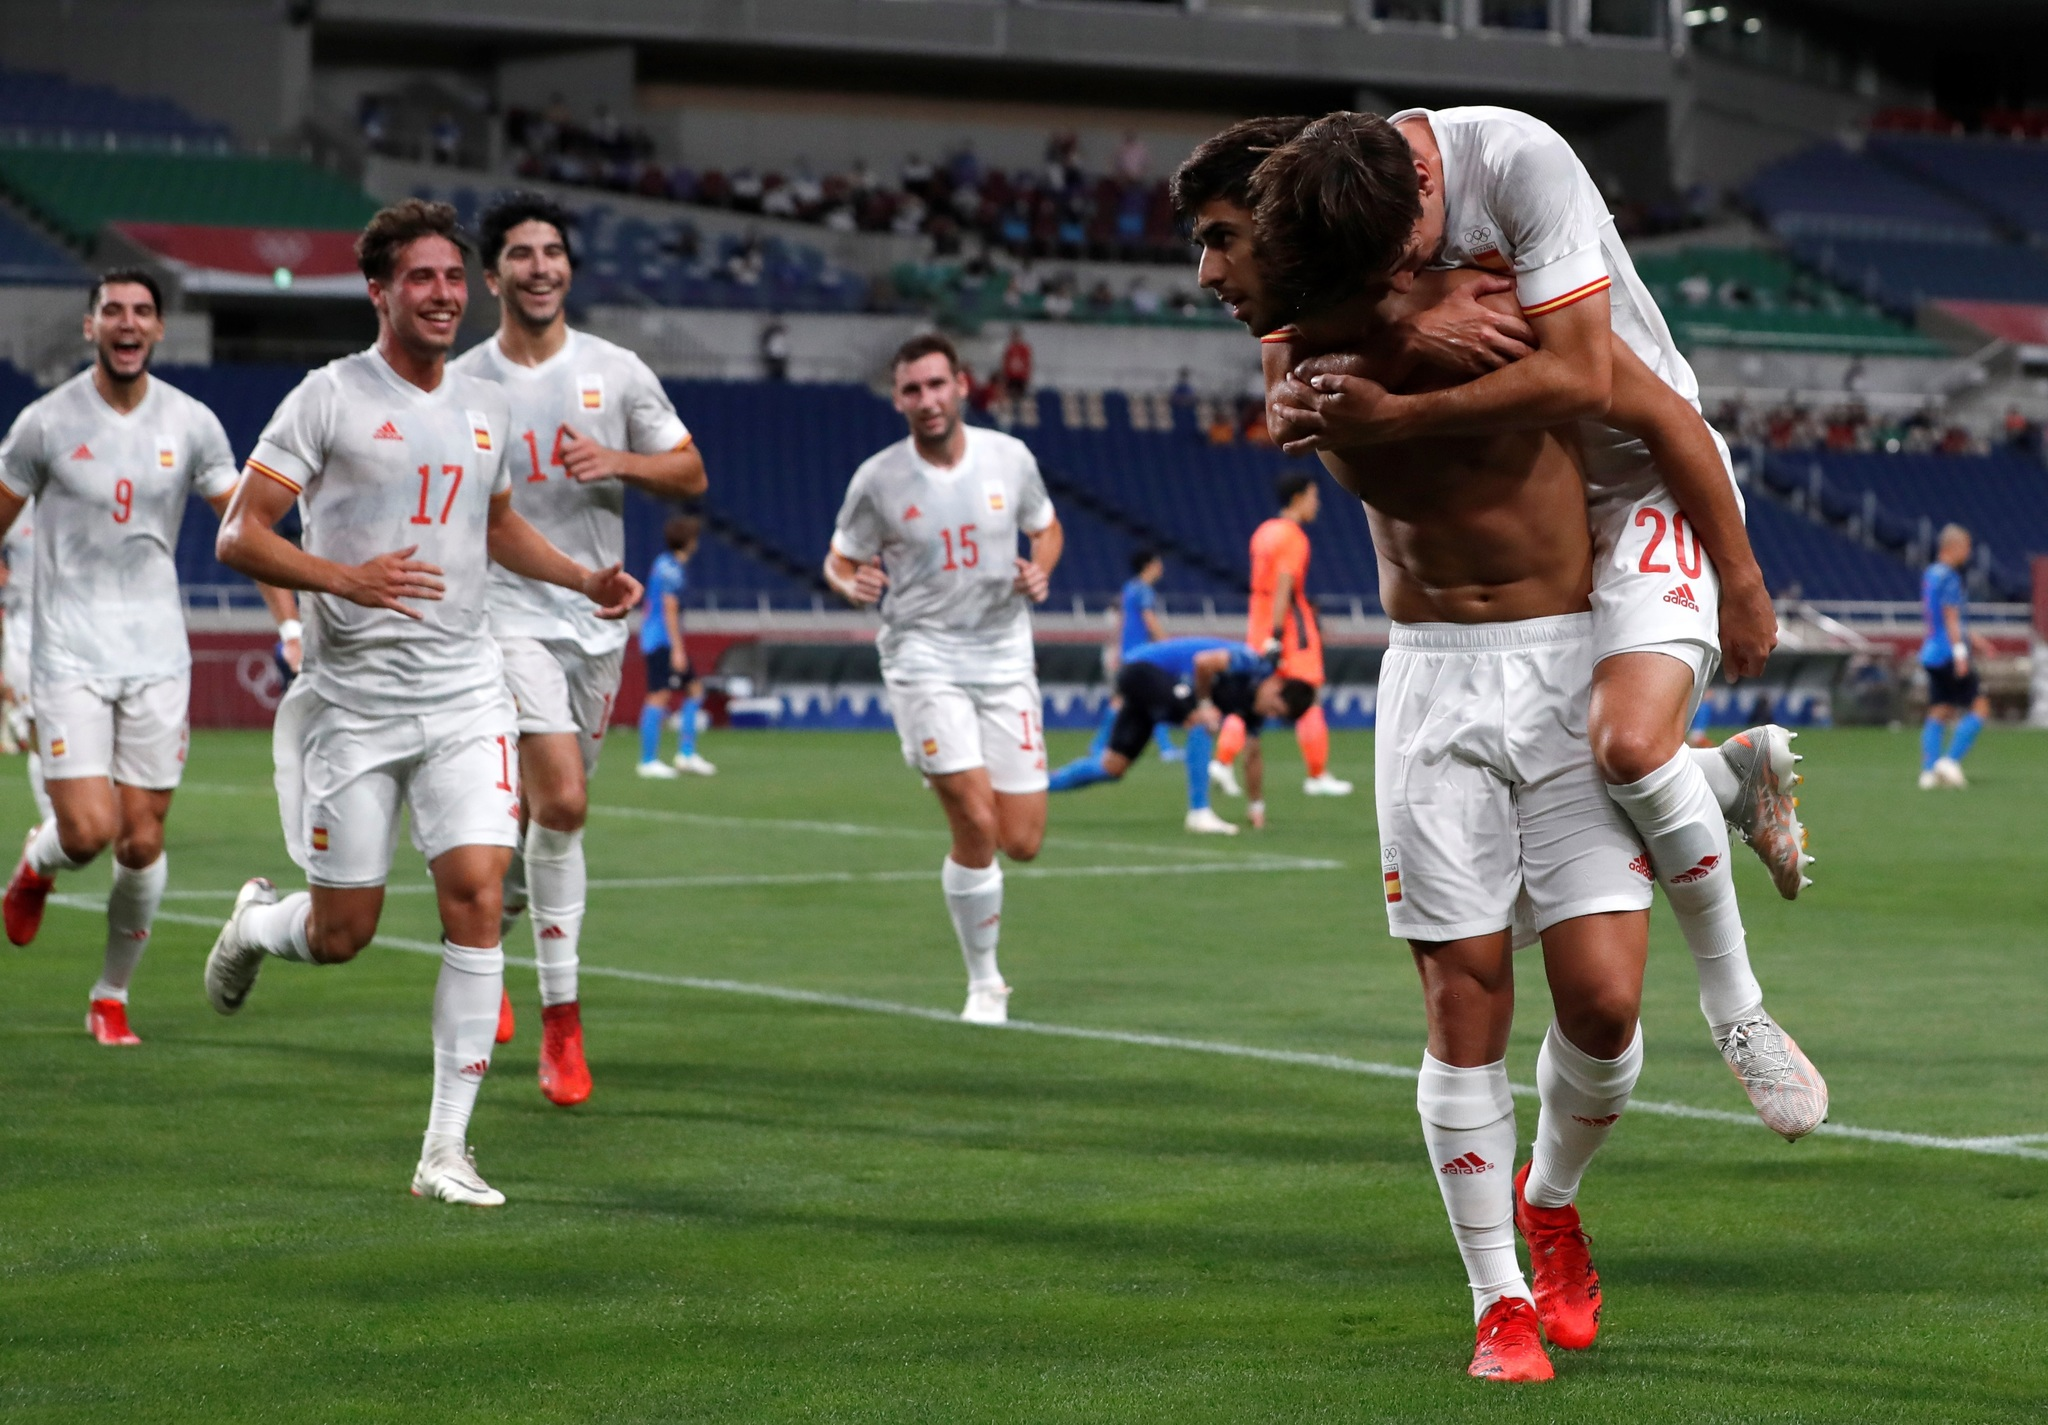 Spain's Marco Asensio celebrates with his teammates after scoring against Japan.